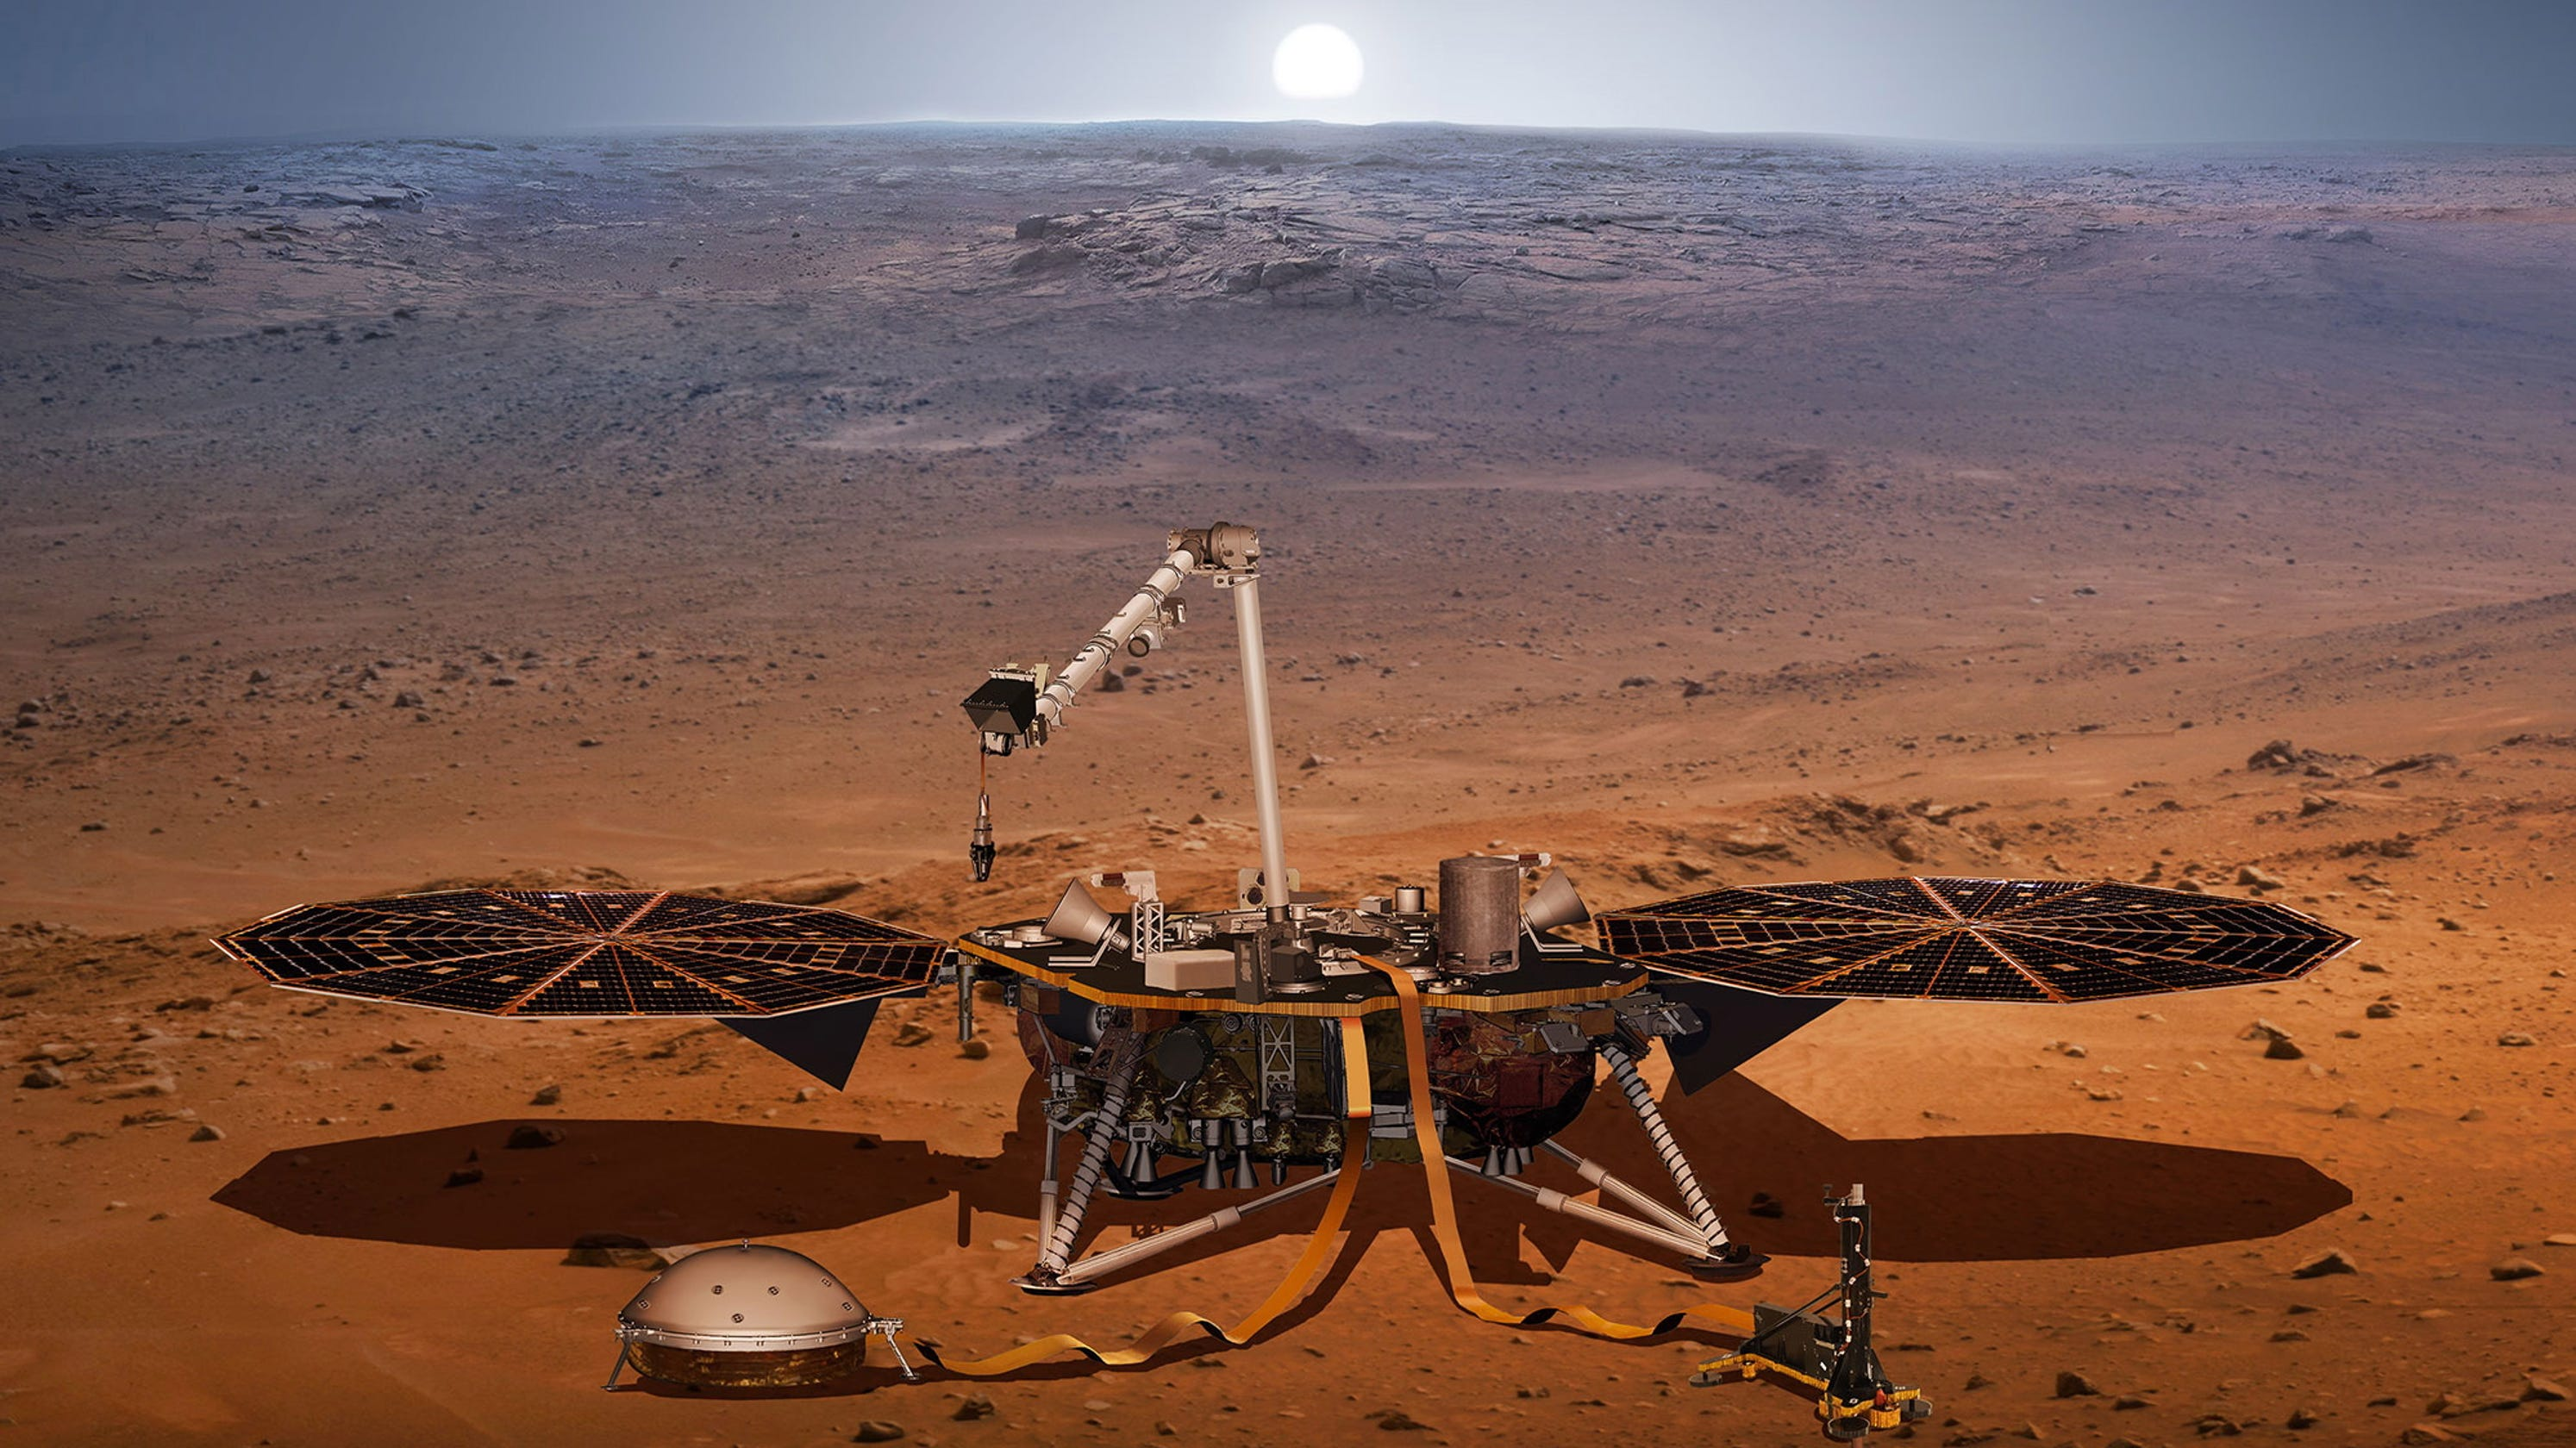 mars landing today news - photo #6